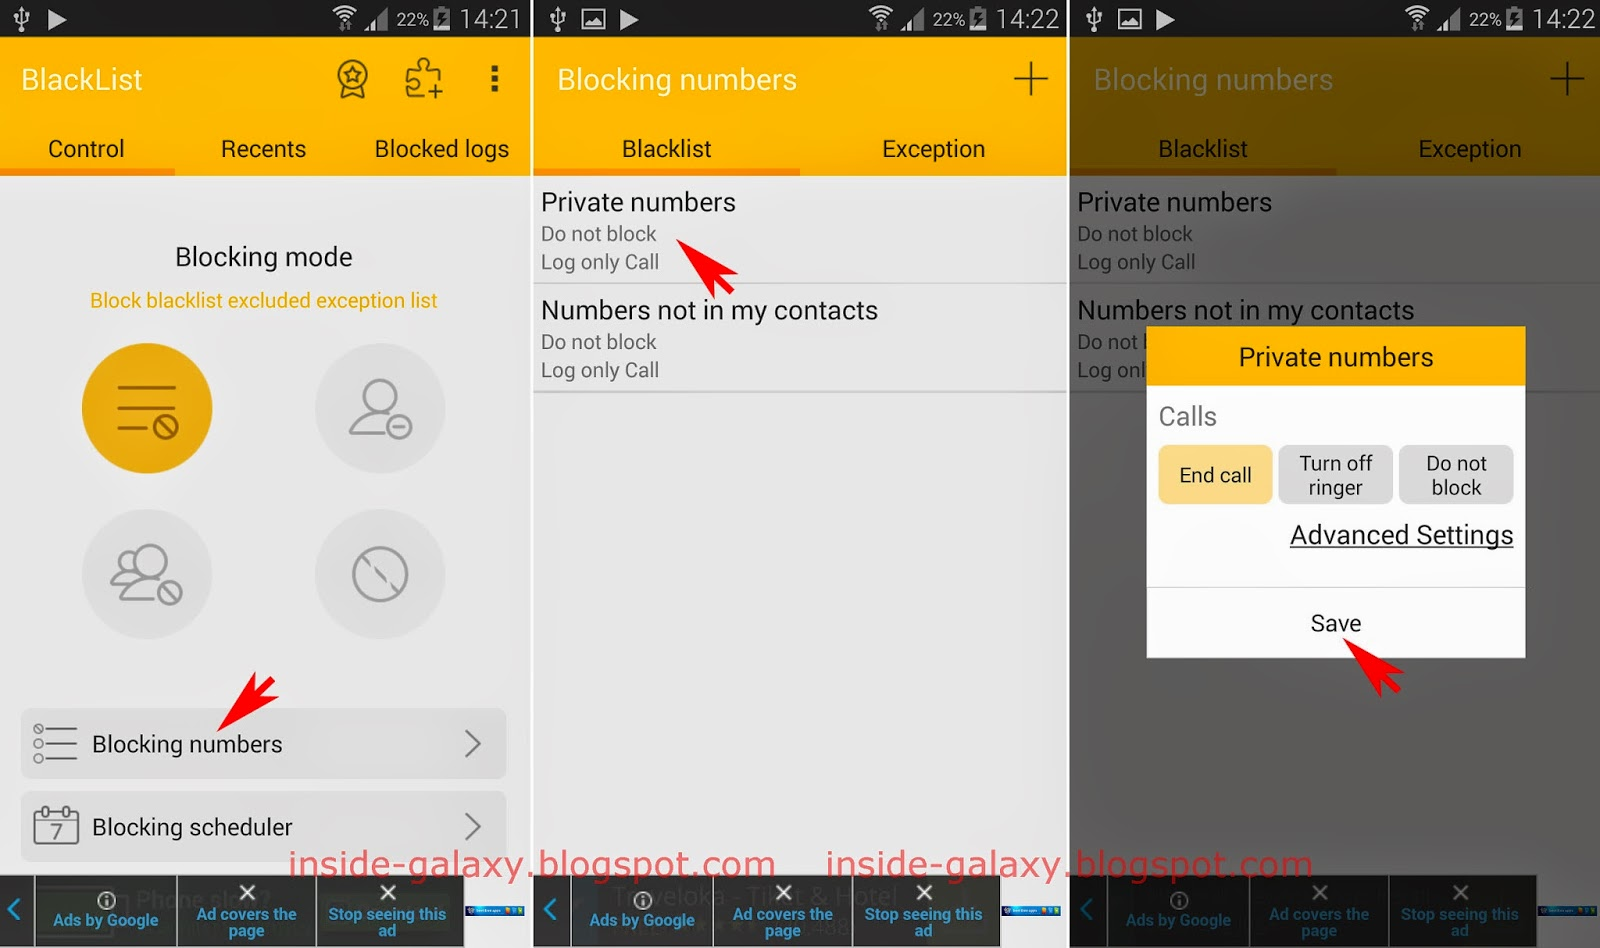 Phone Android Phone Blacklist inside galaxy samsung s5 how to block private calls or numbers in android 4 2 kitkat